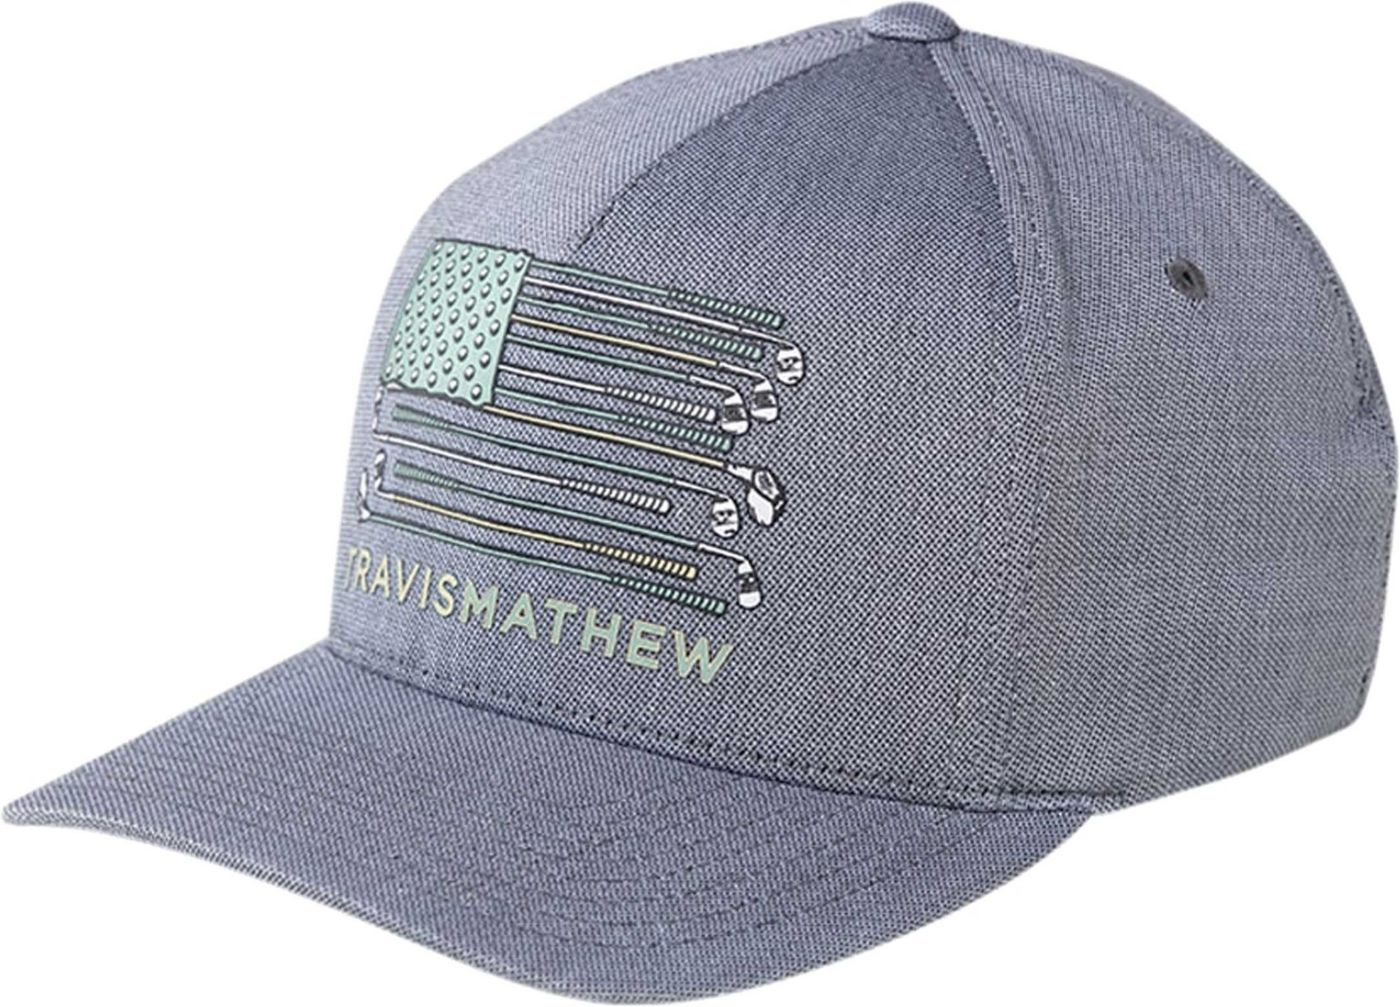 TravisMathew Men's Fitzjohn Golf Hat